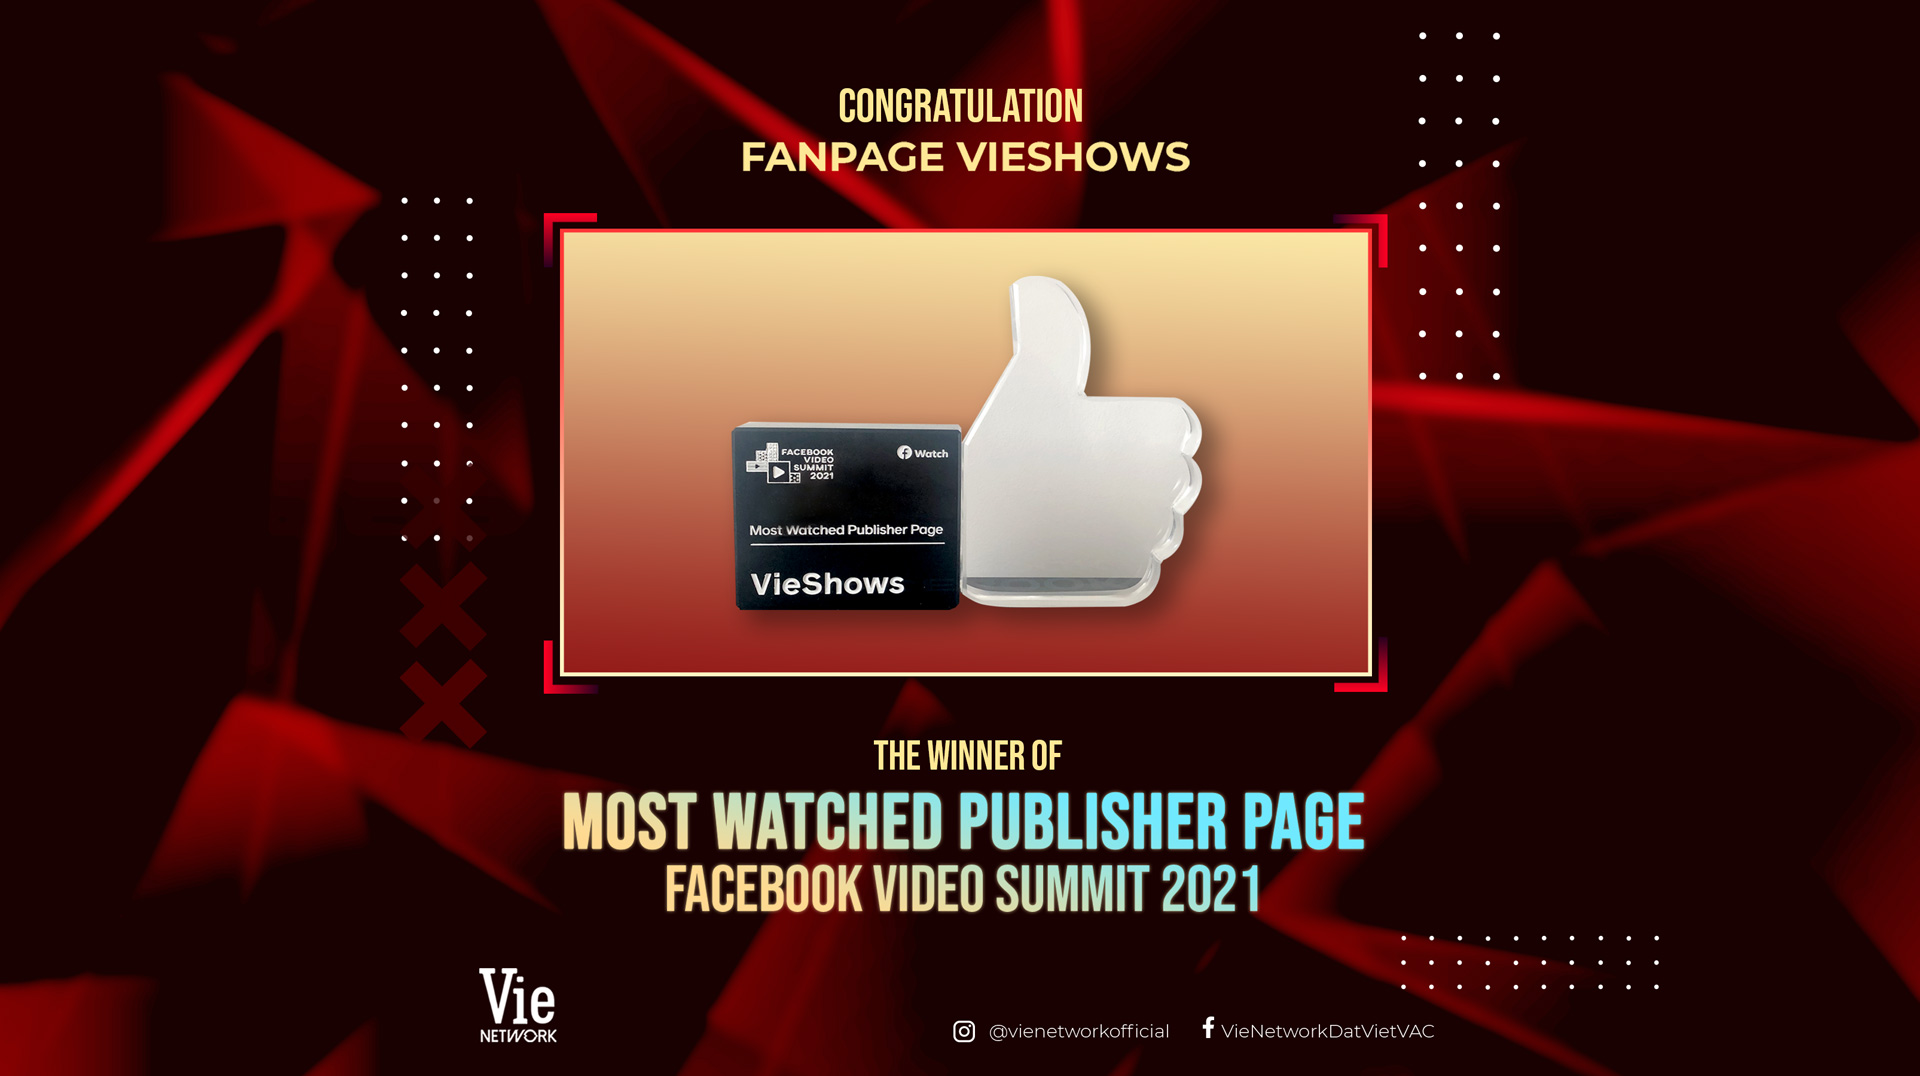 Vieshows honored at FACEBOOK VIDEO SUMMIT 2021